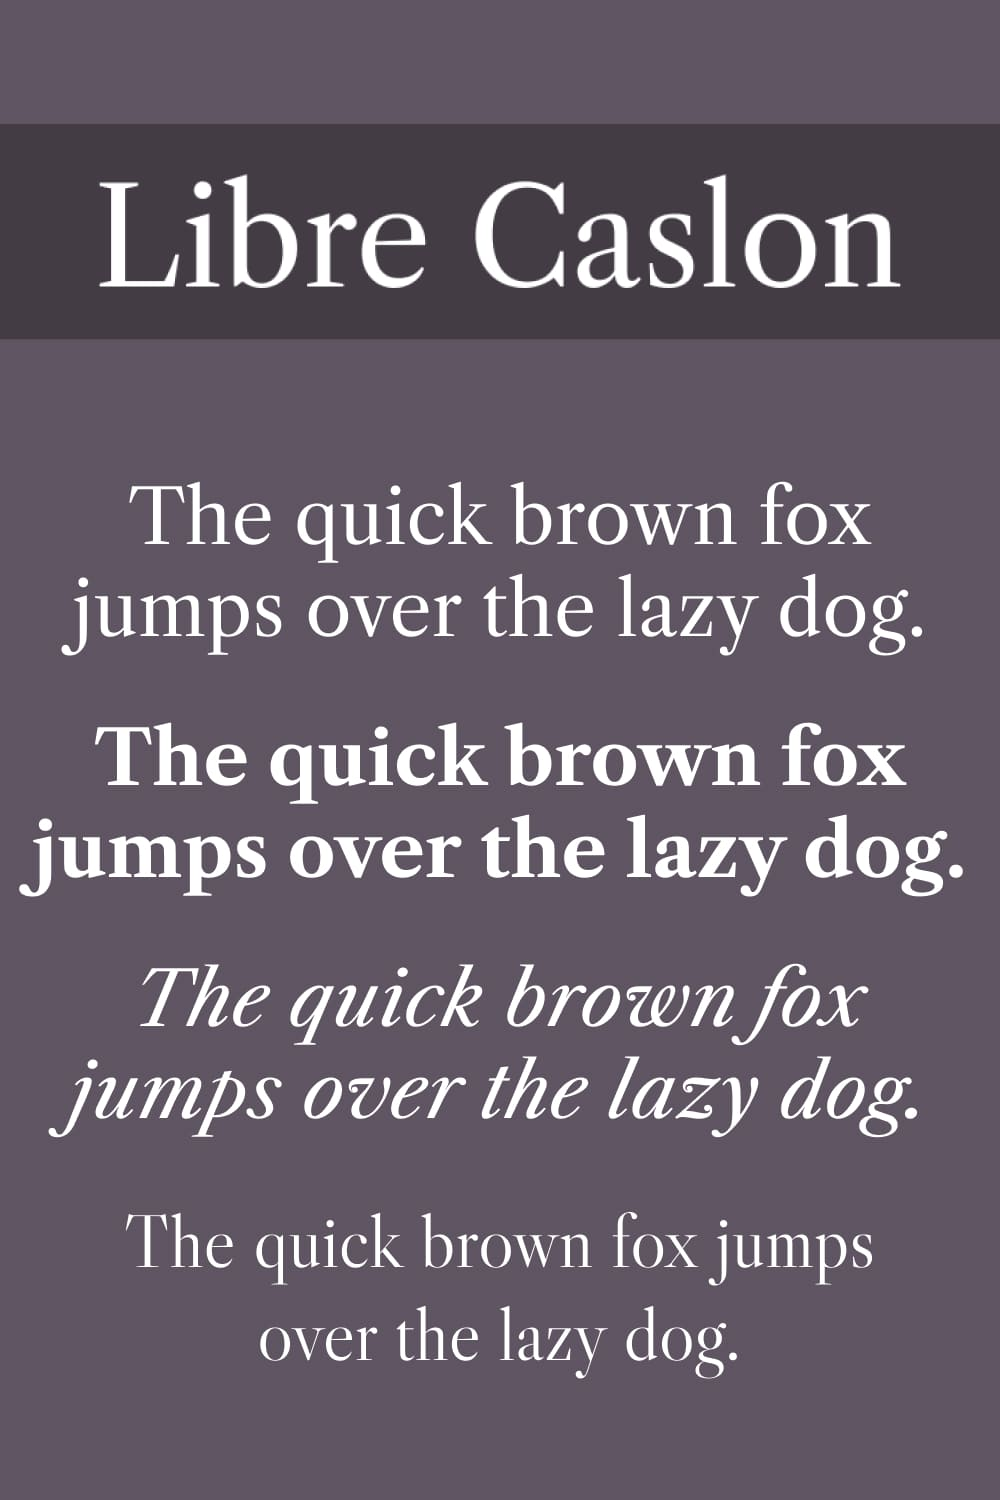 Smooth and sophisticated font with a soft effect.